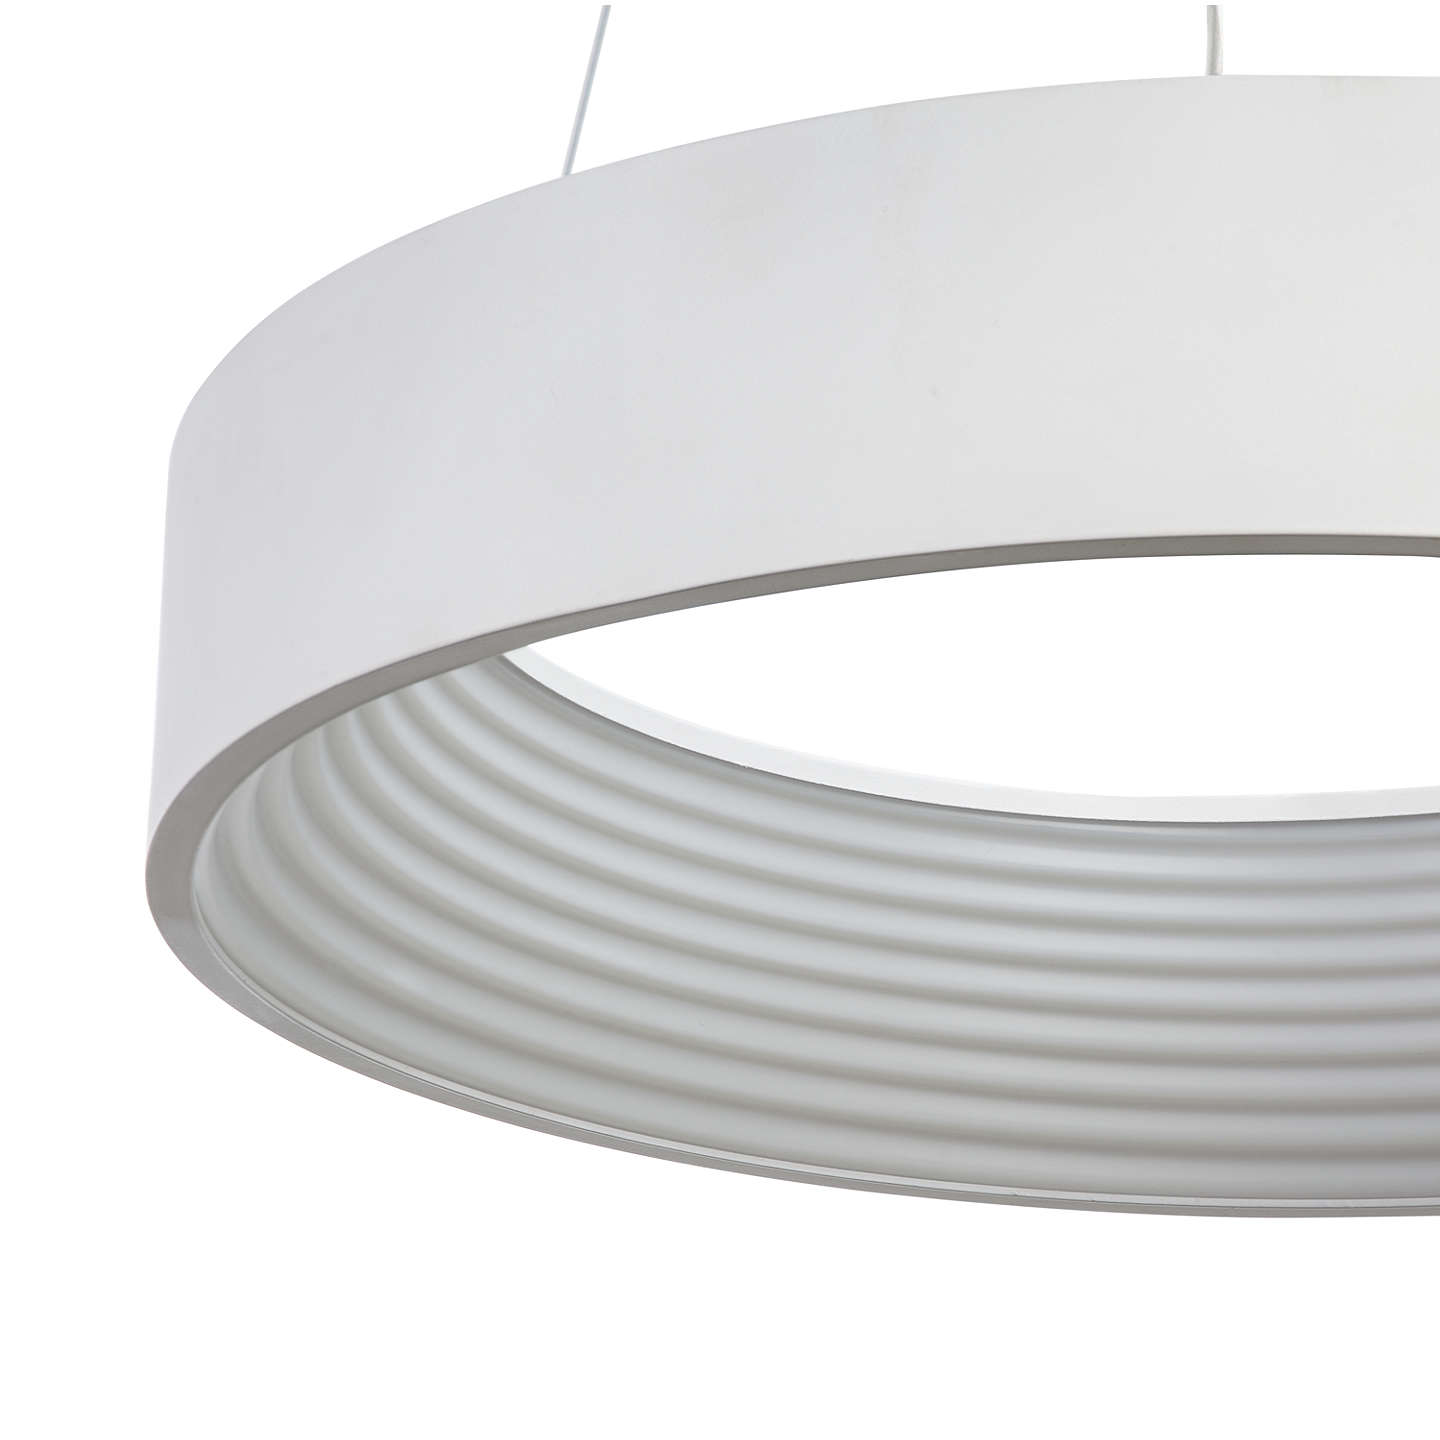 John lewis leif small led ribbed hoop ceiling light white at john lewis buyjohn lewis leif small led ribbed hoop ceiling light white online at johnlewis aloadofball Image collections